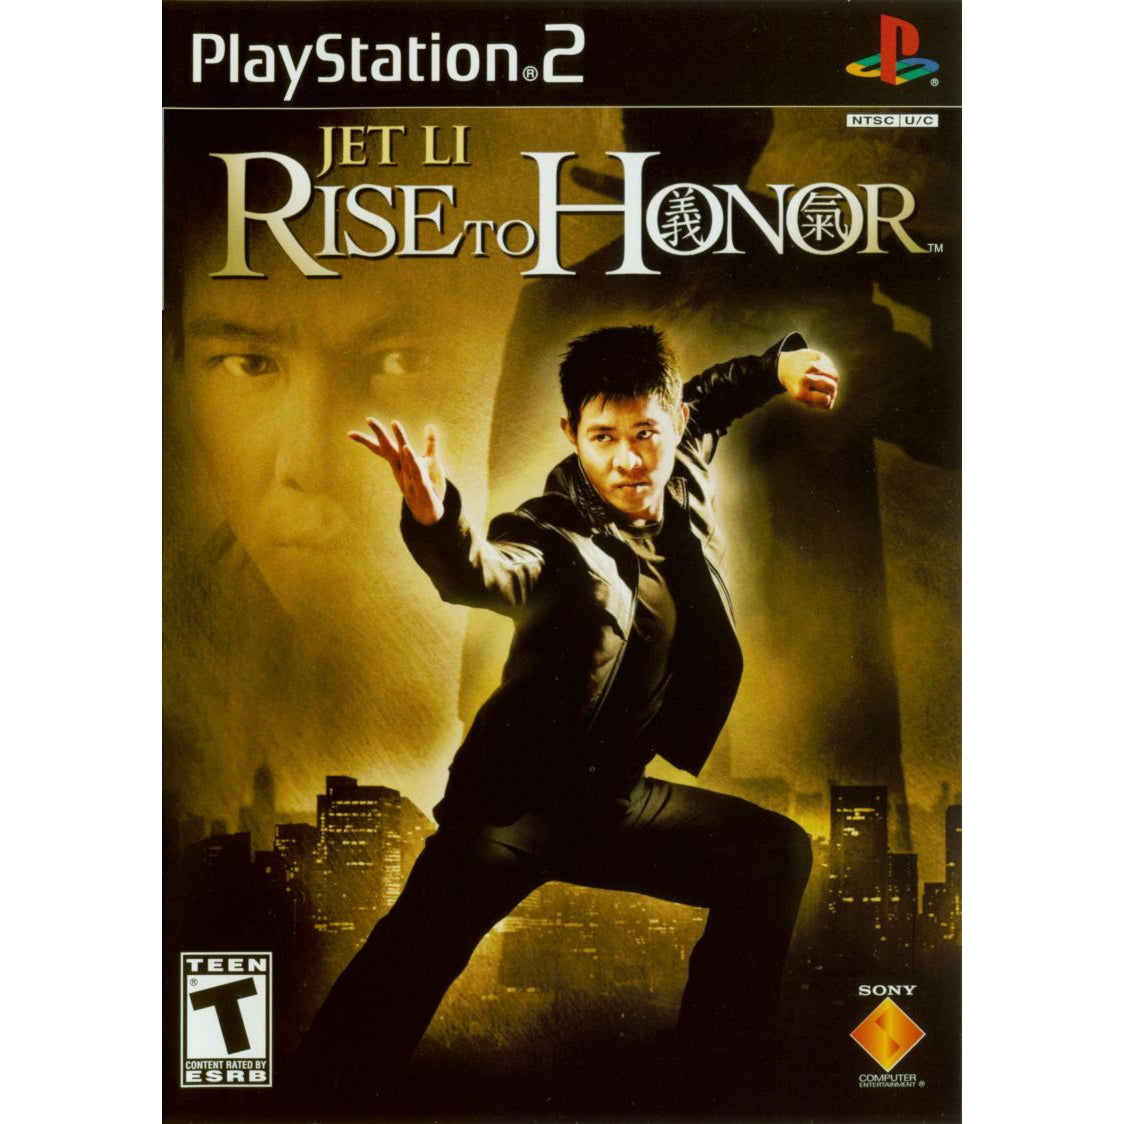 Rise to Honor - PlayStation 2 (PS2) Game Complete - YourGamingShop.com - Buy, Sell, Trade Video Games Online. 120 Day Warranty. Satisfaction Guaranteed.